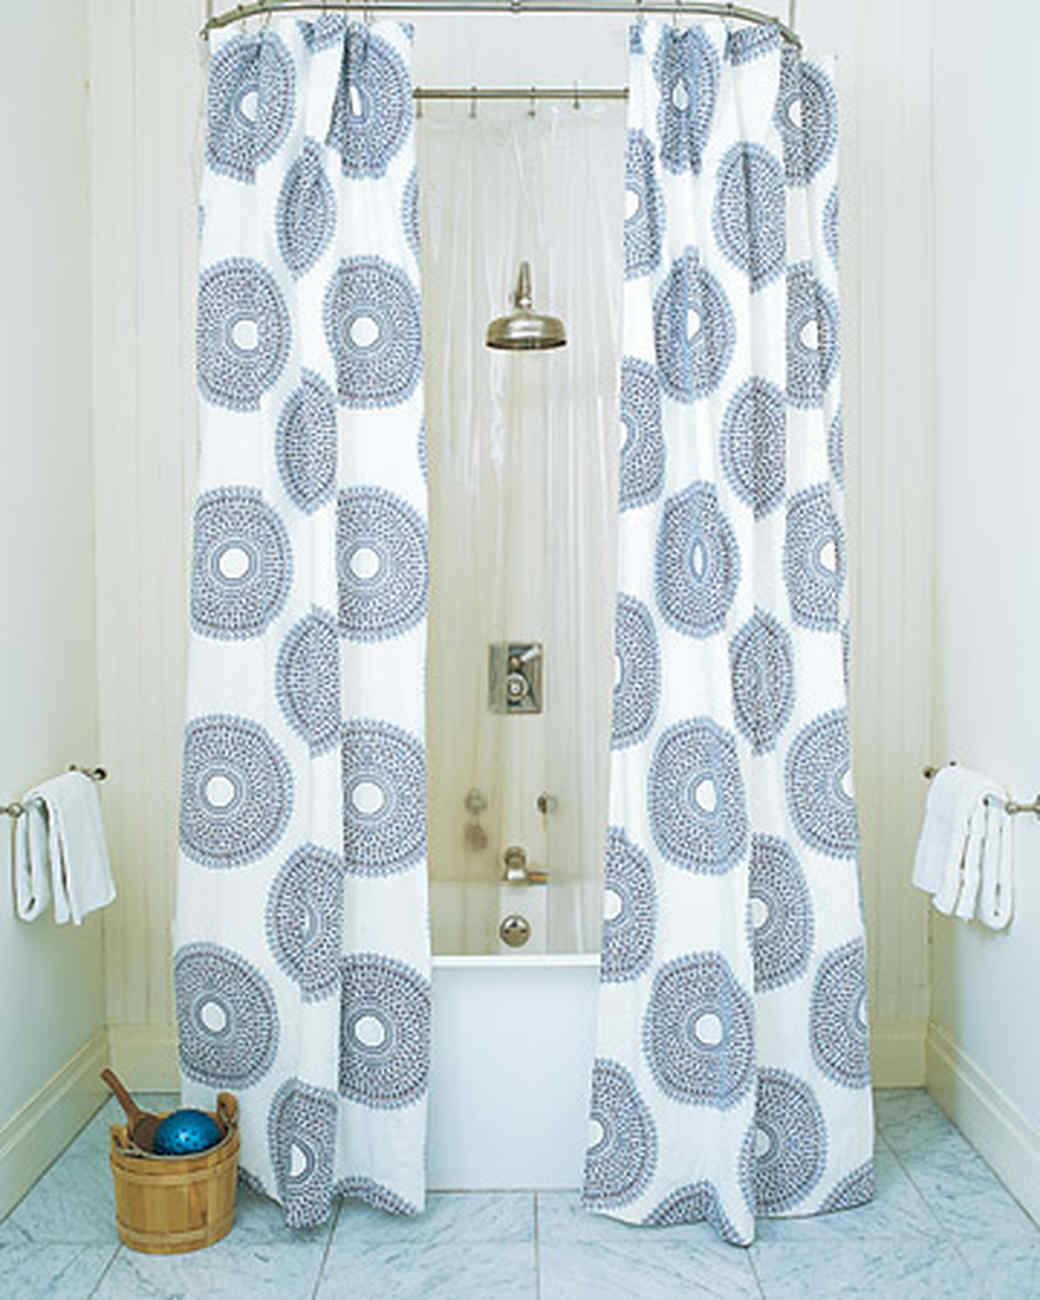 mla103722_0908_shower.jpg